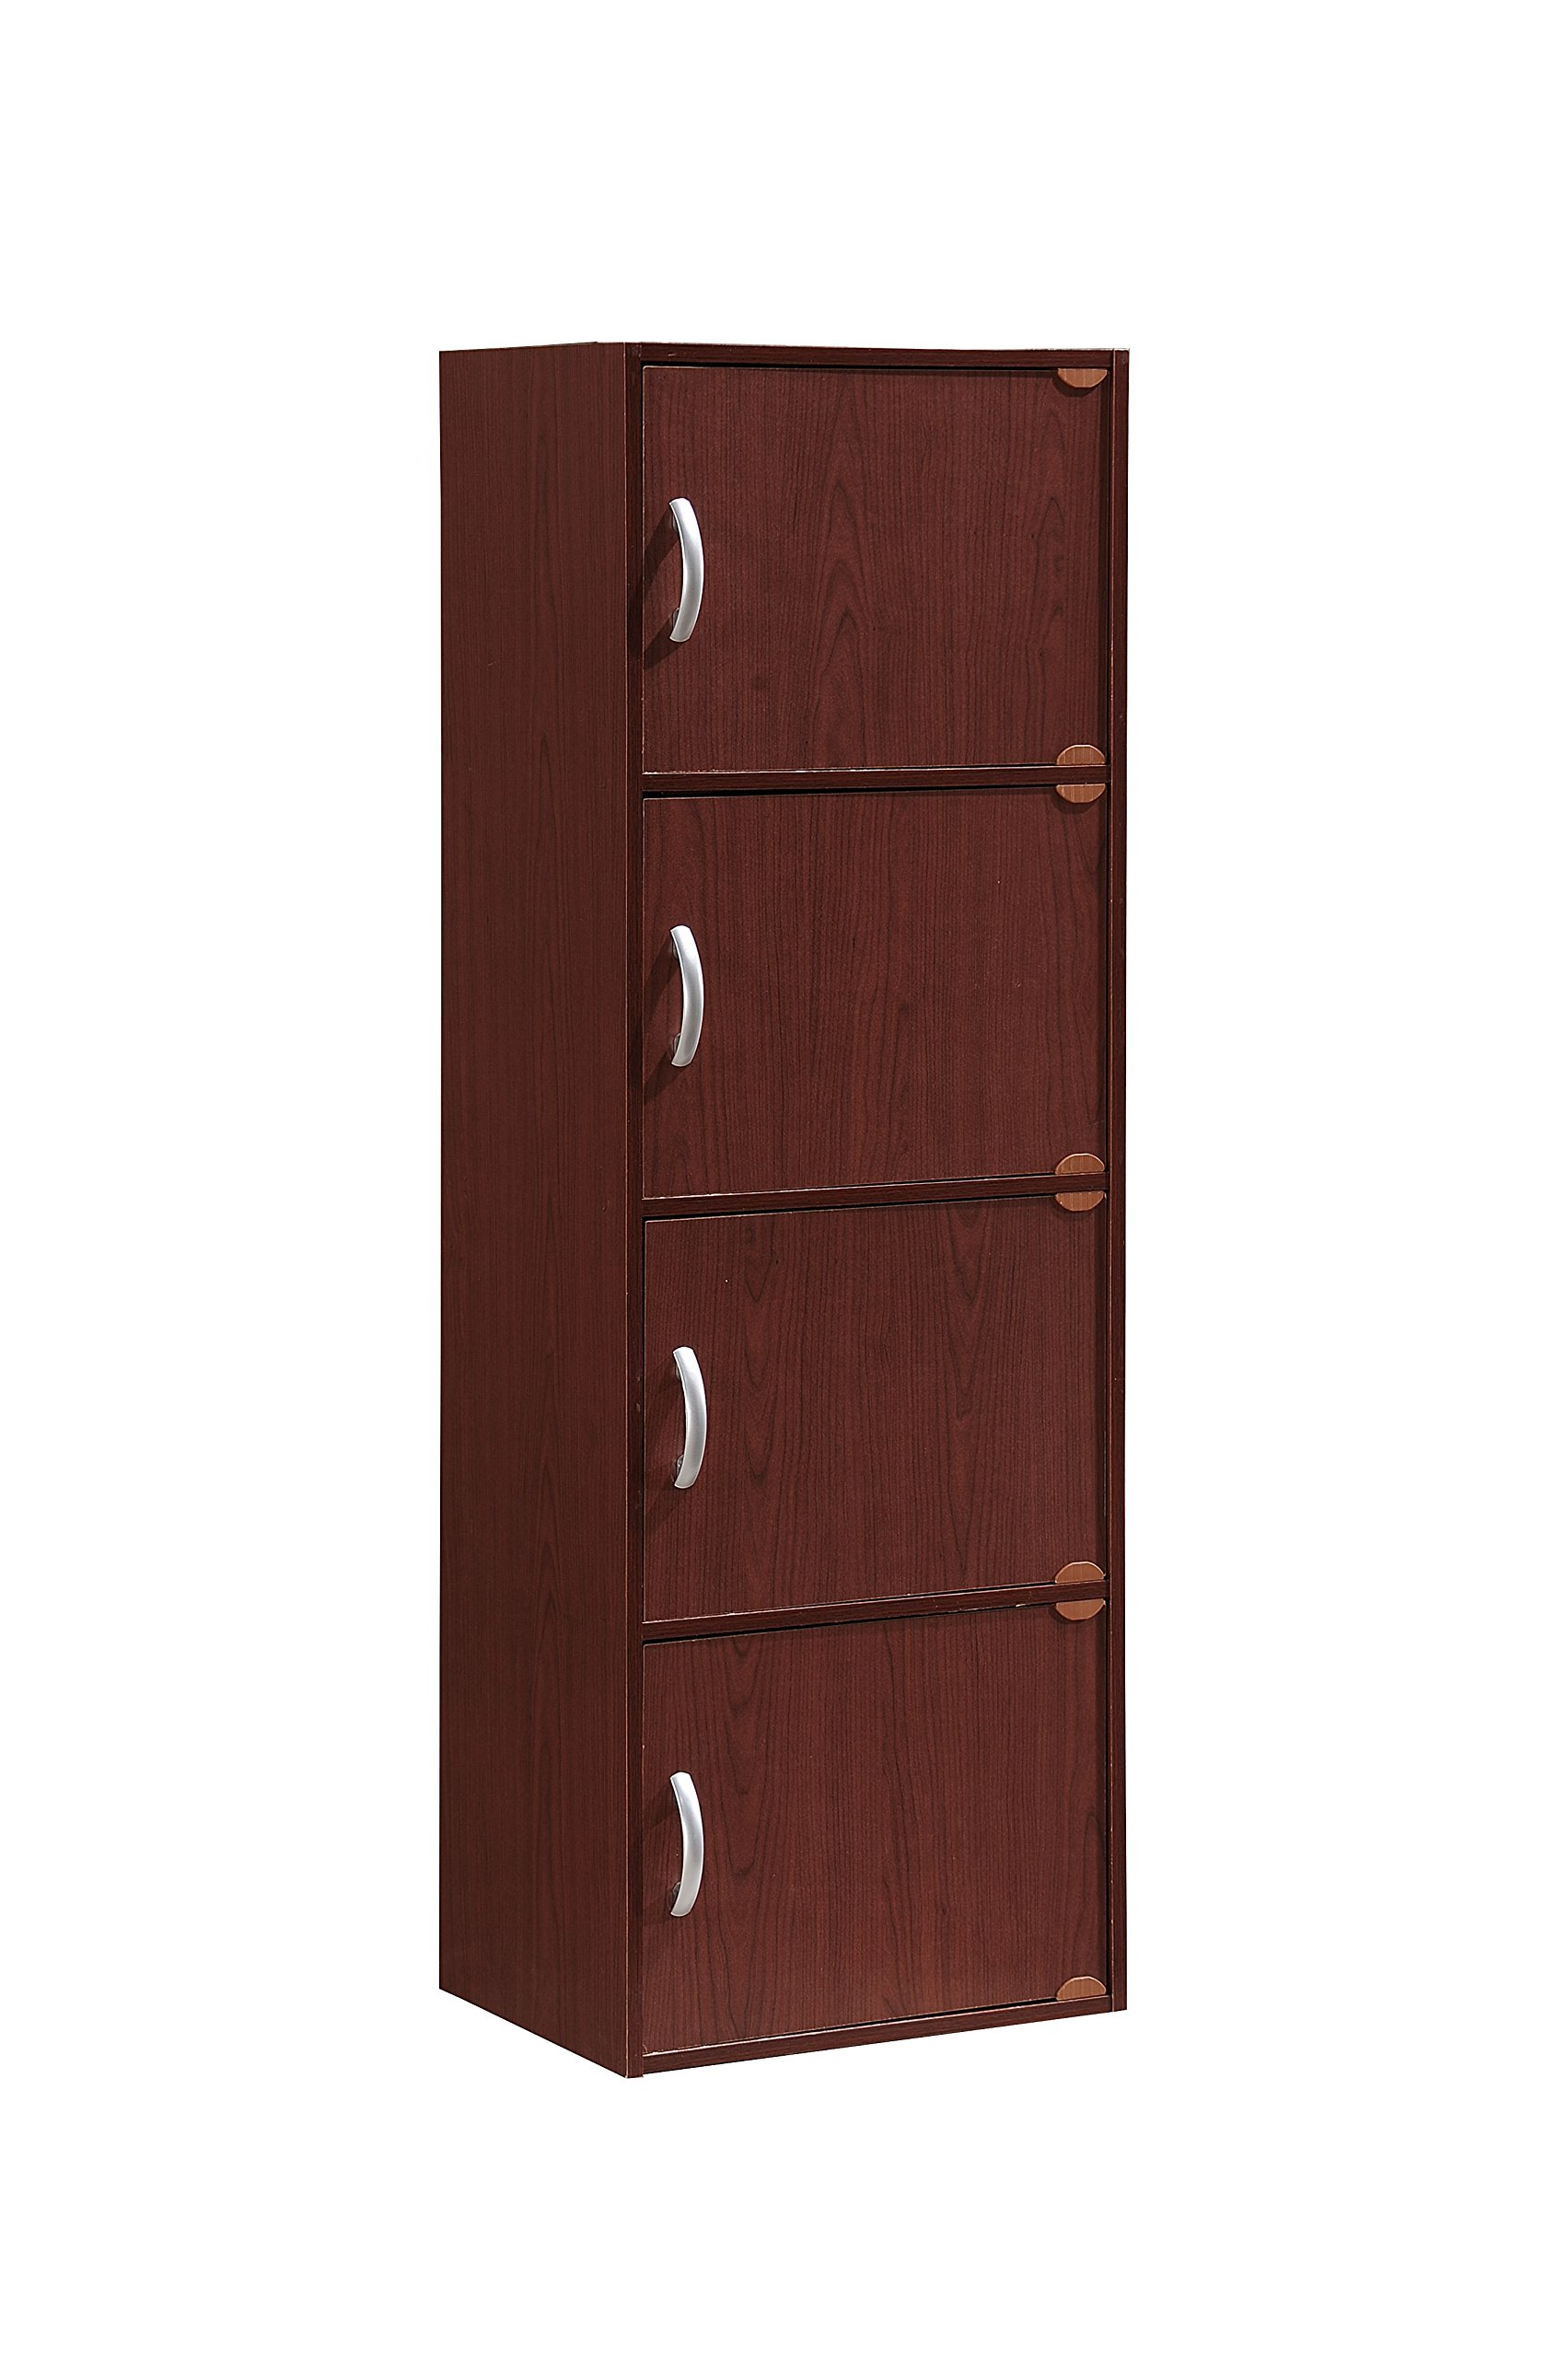 Hodedah 4 Door, Four Shleves, Enclosed Storage Cabinet, Mahogany